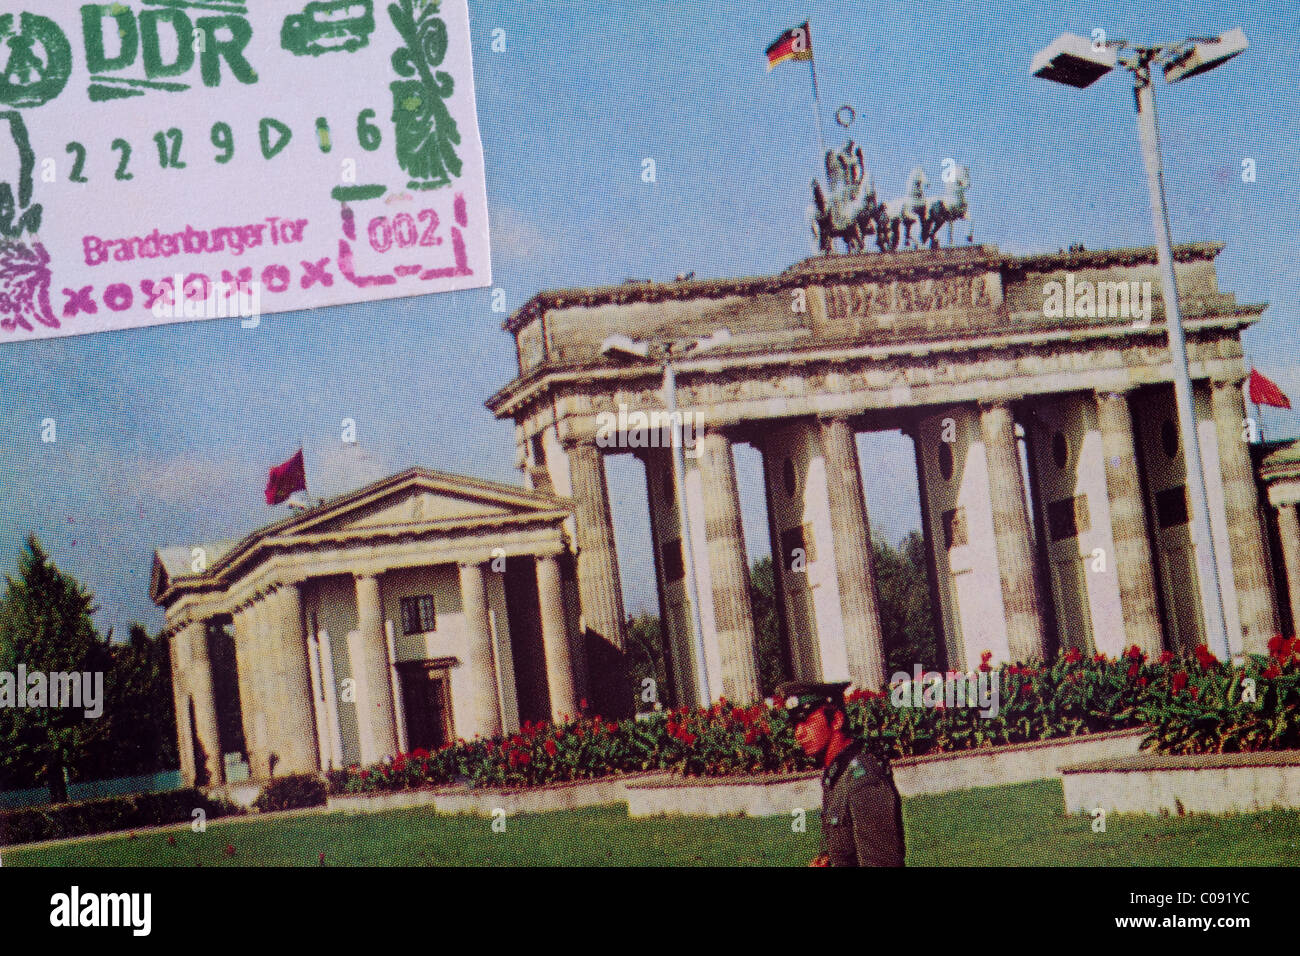 DDR: Opening of border crossing point at the Brandenburger Tor 12.22.1989 - Stock Image